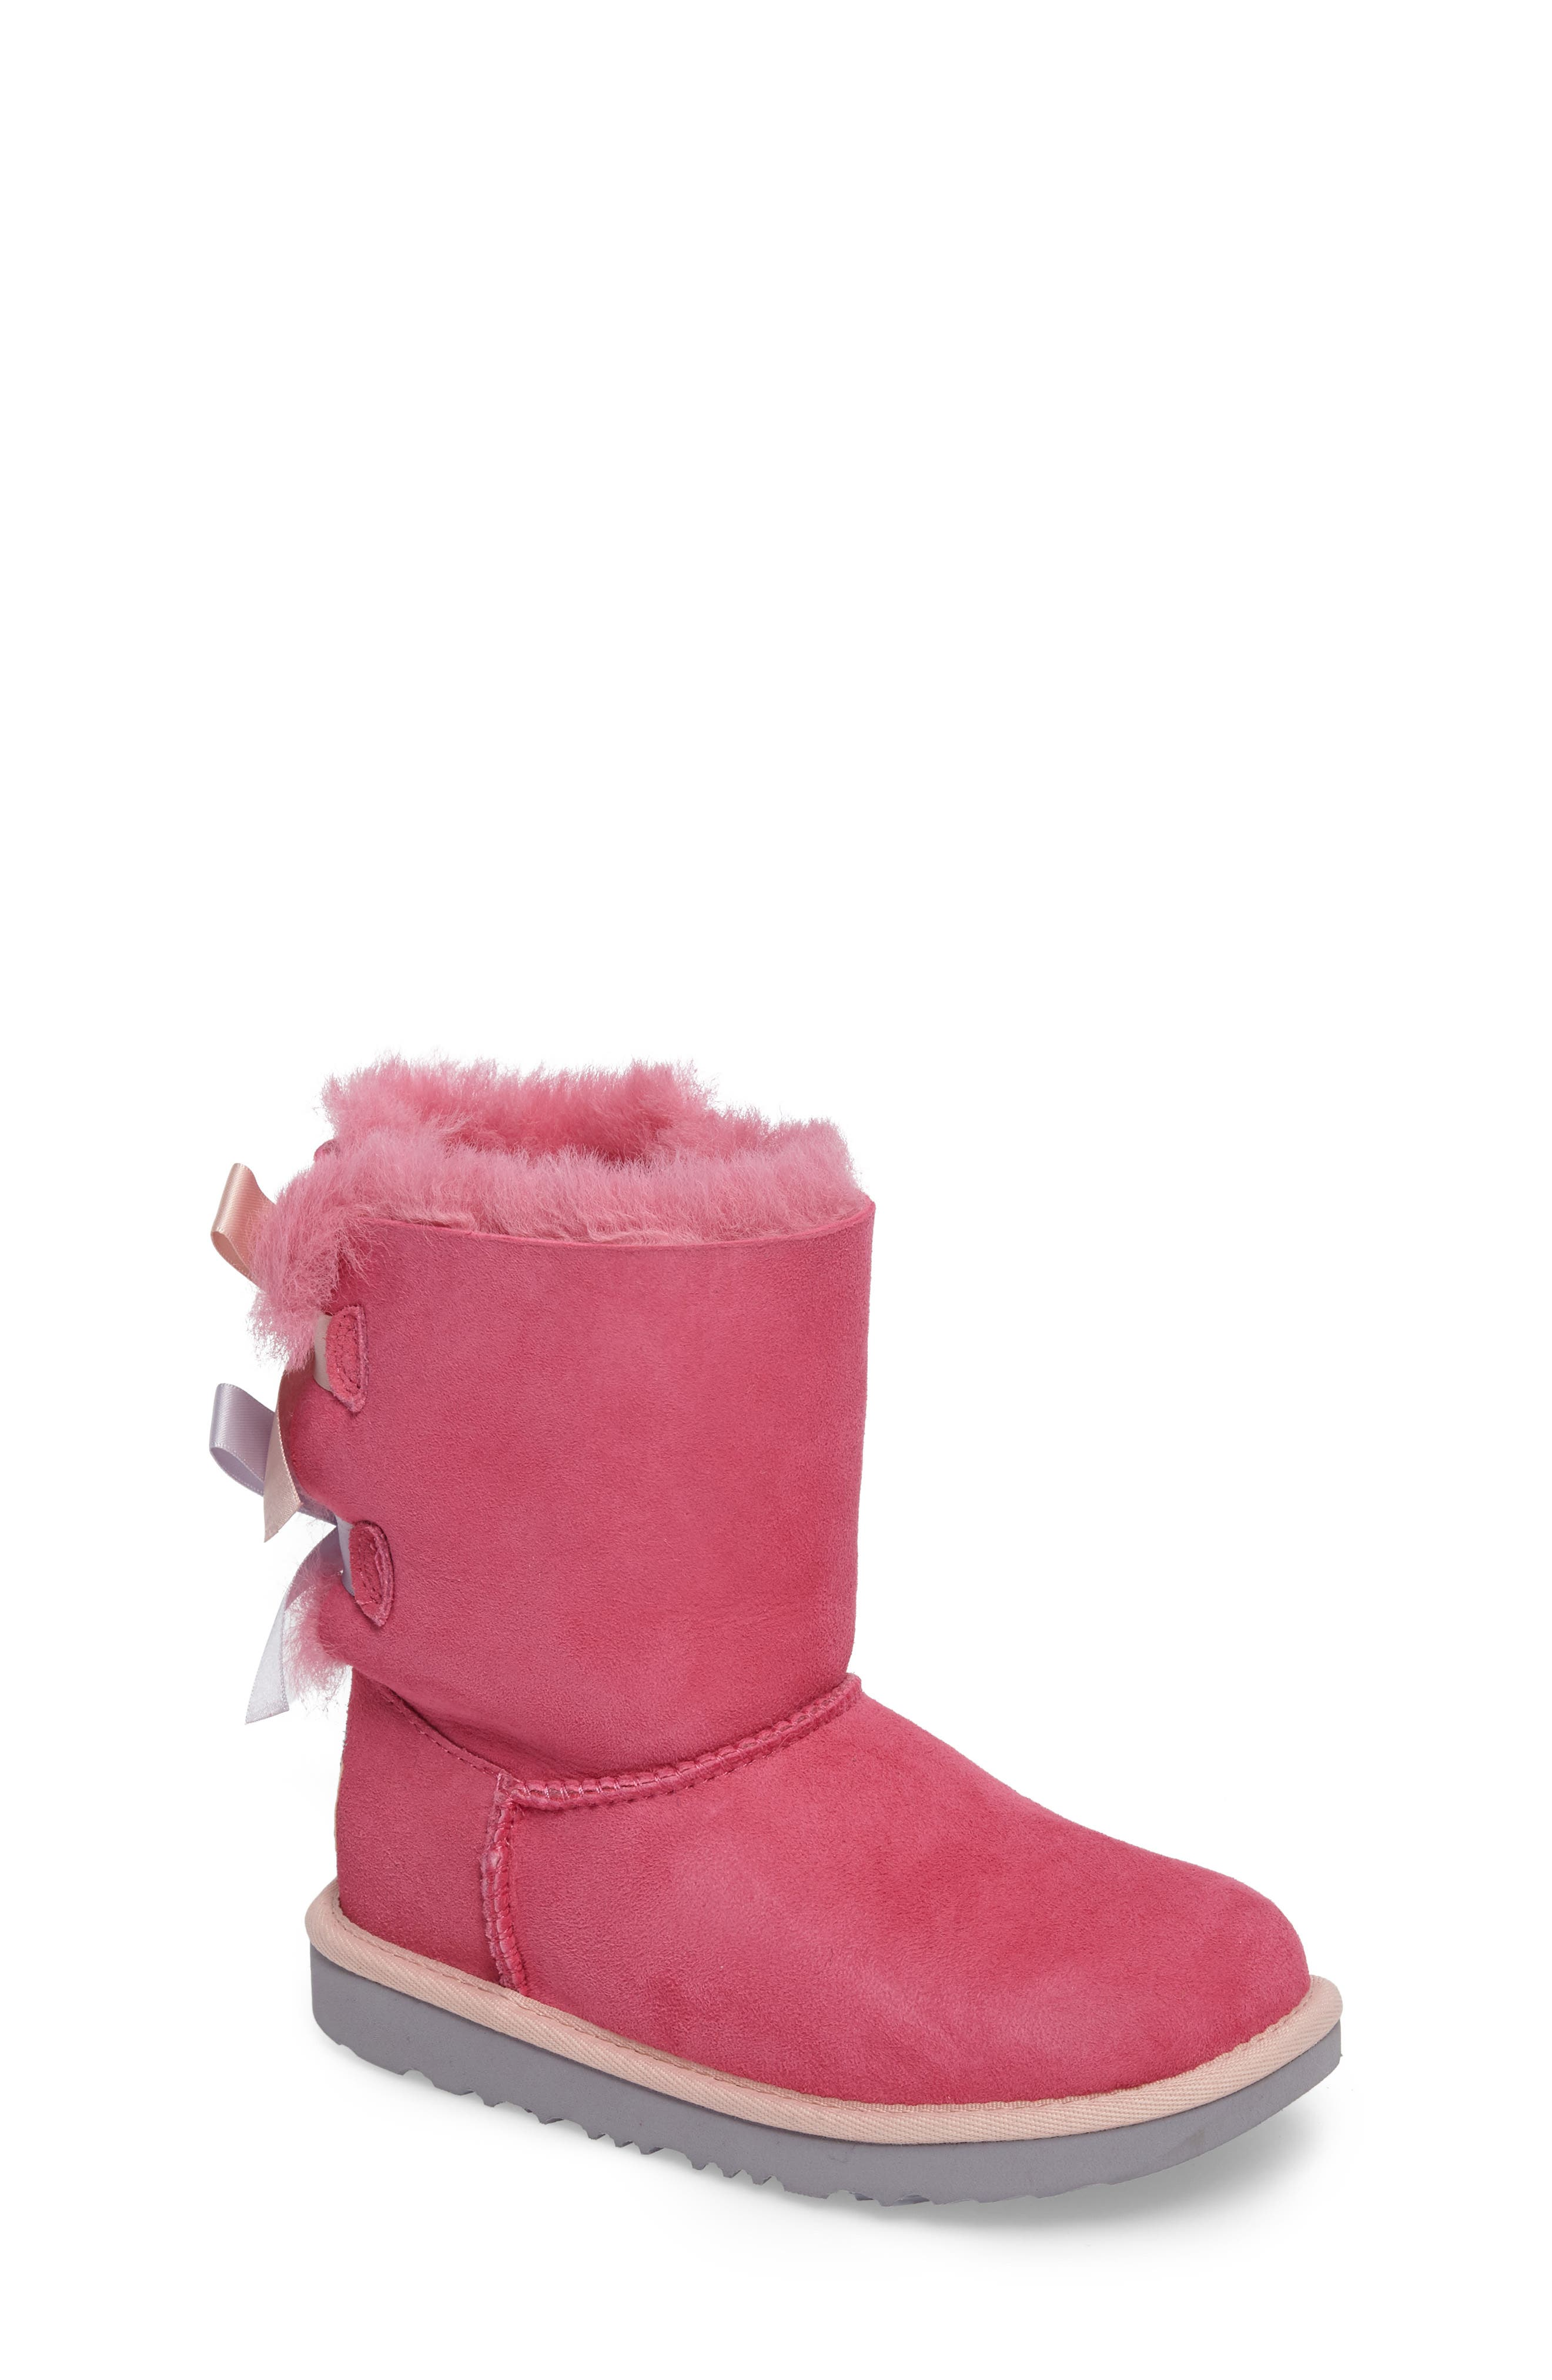 Bailey Bow II Water Resistant Genuine Shearling Boot,                             Main thumbnail 1, color,                             Pink/ Blue Suede